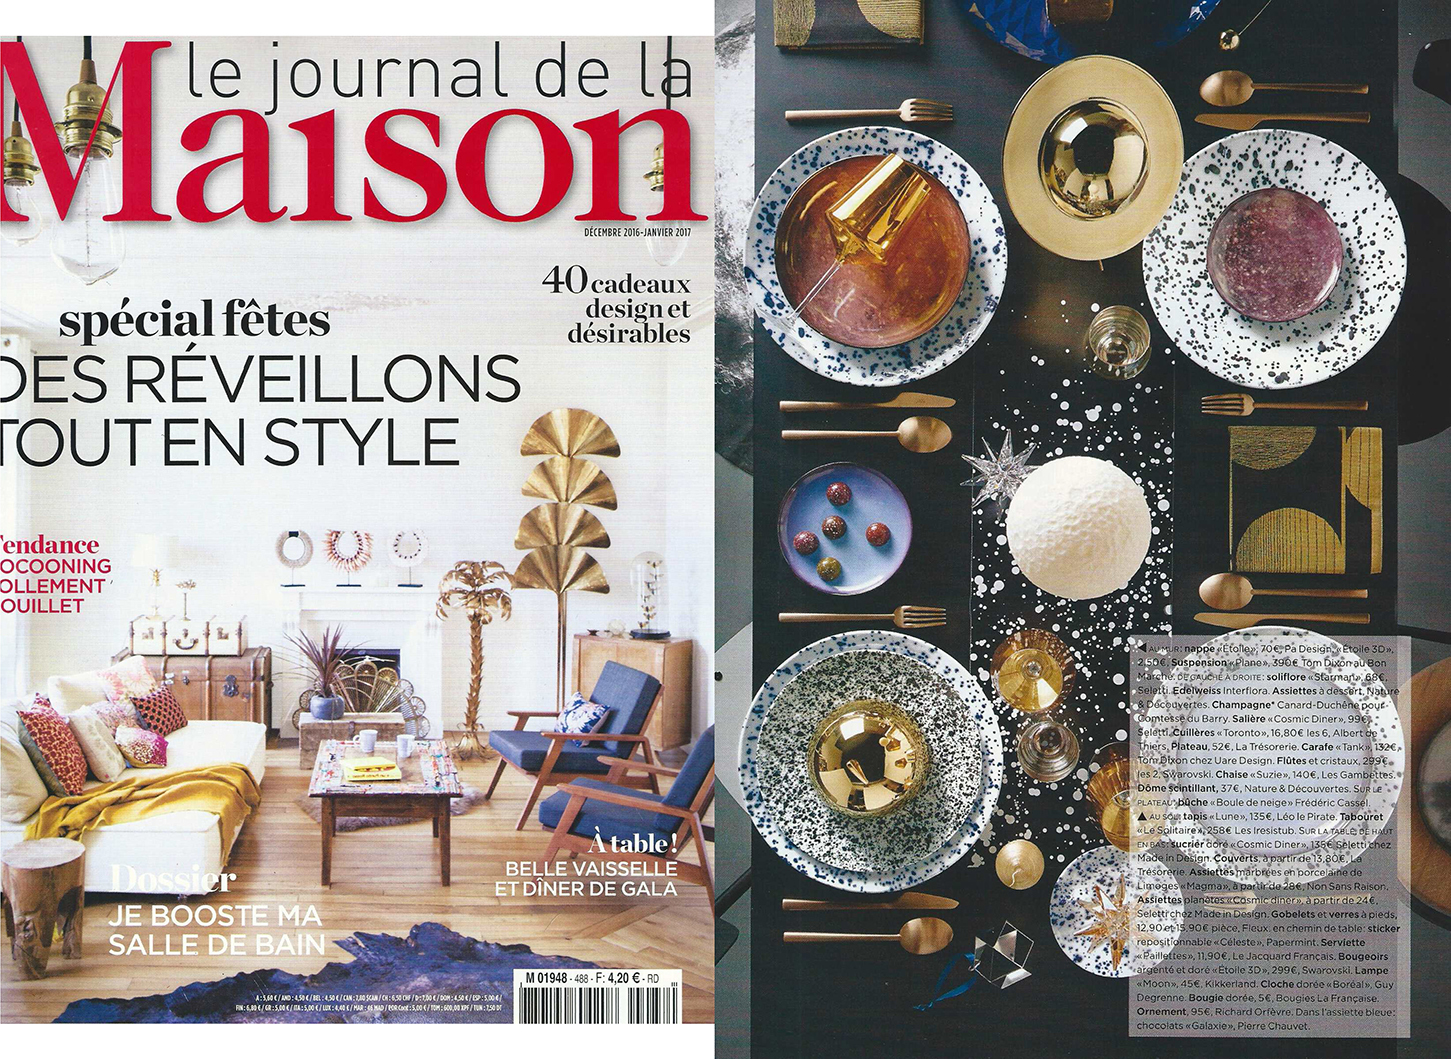 Le journal de la maison non sans raison - Journal de la maison ...